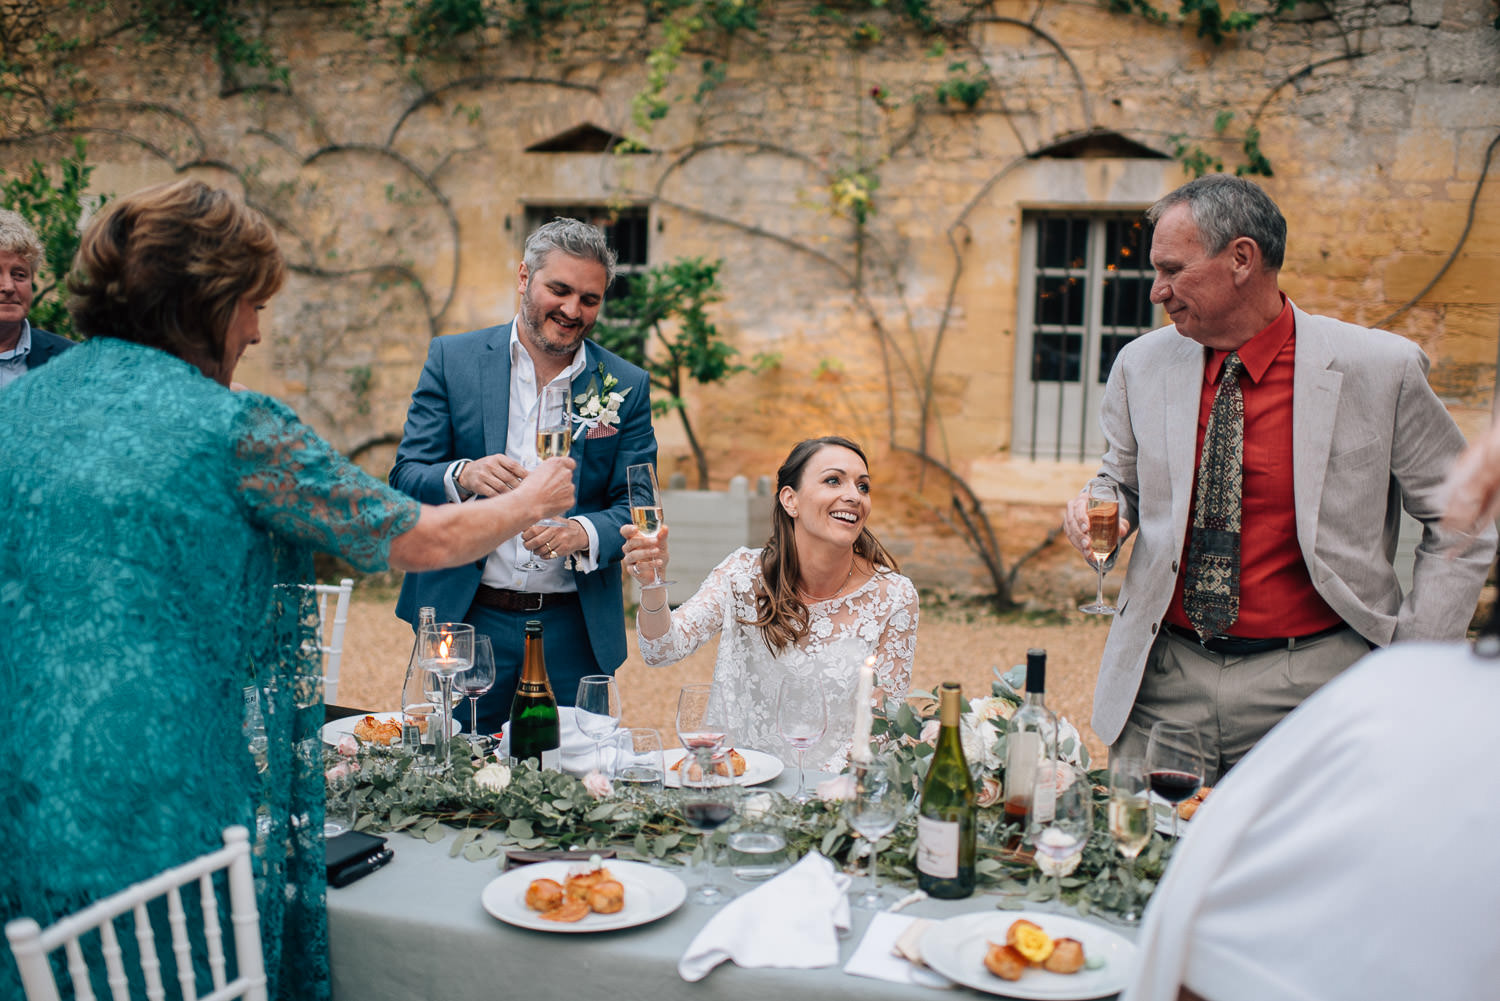 Courtyard wedding in chateau de la bourlie wedding by french destination wedding photographer the shannons photography